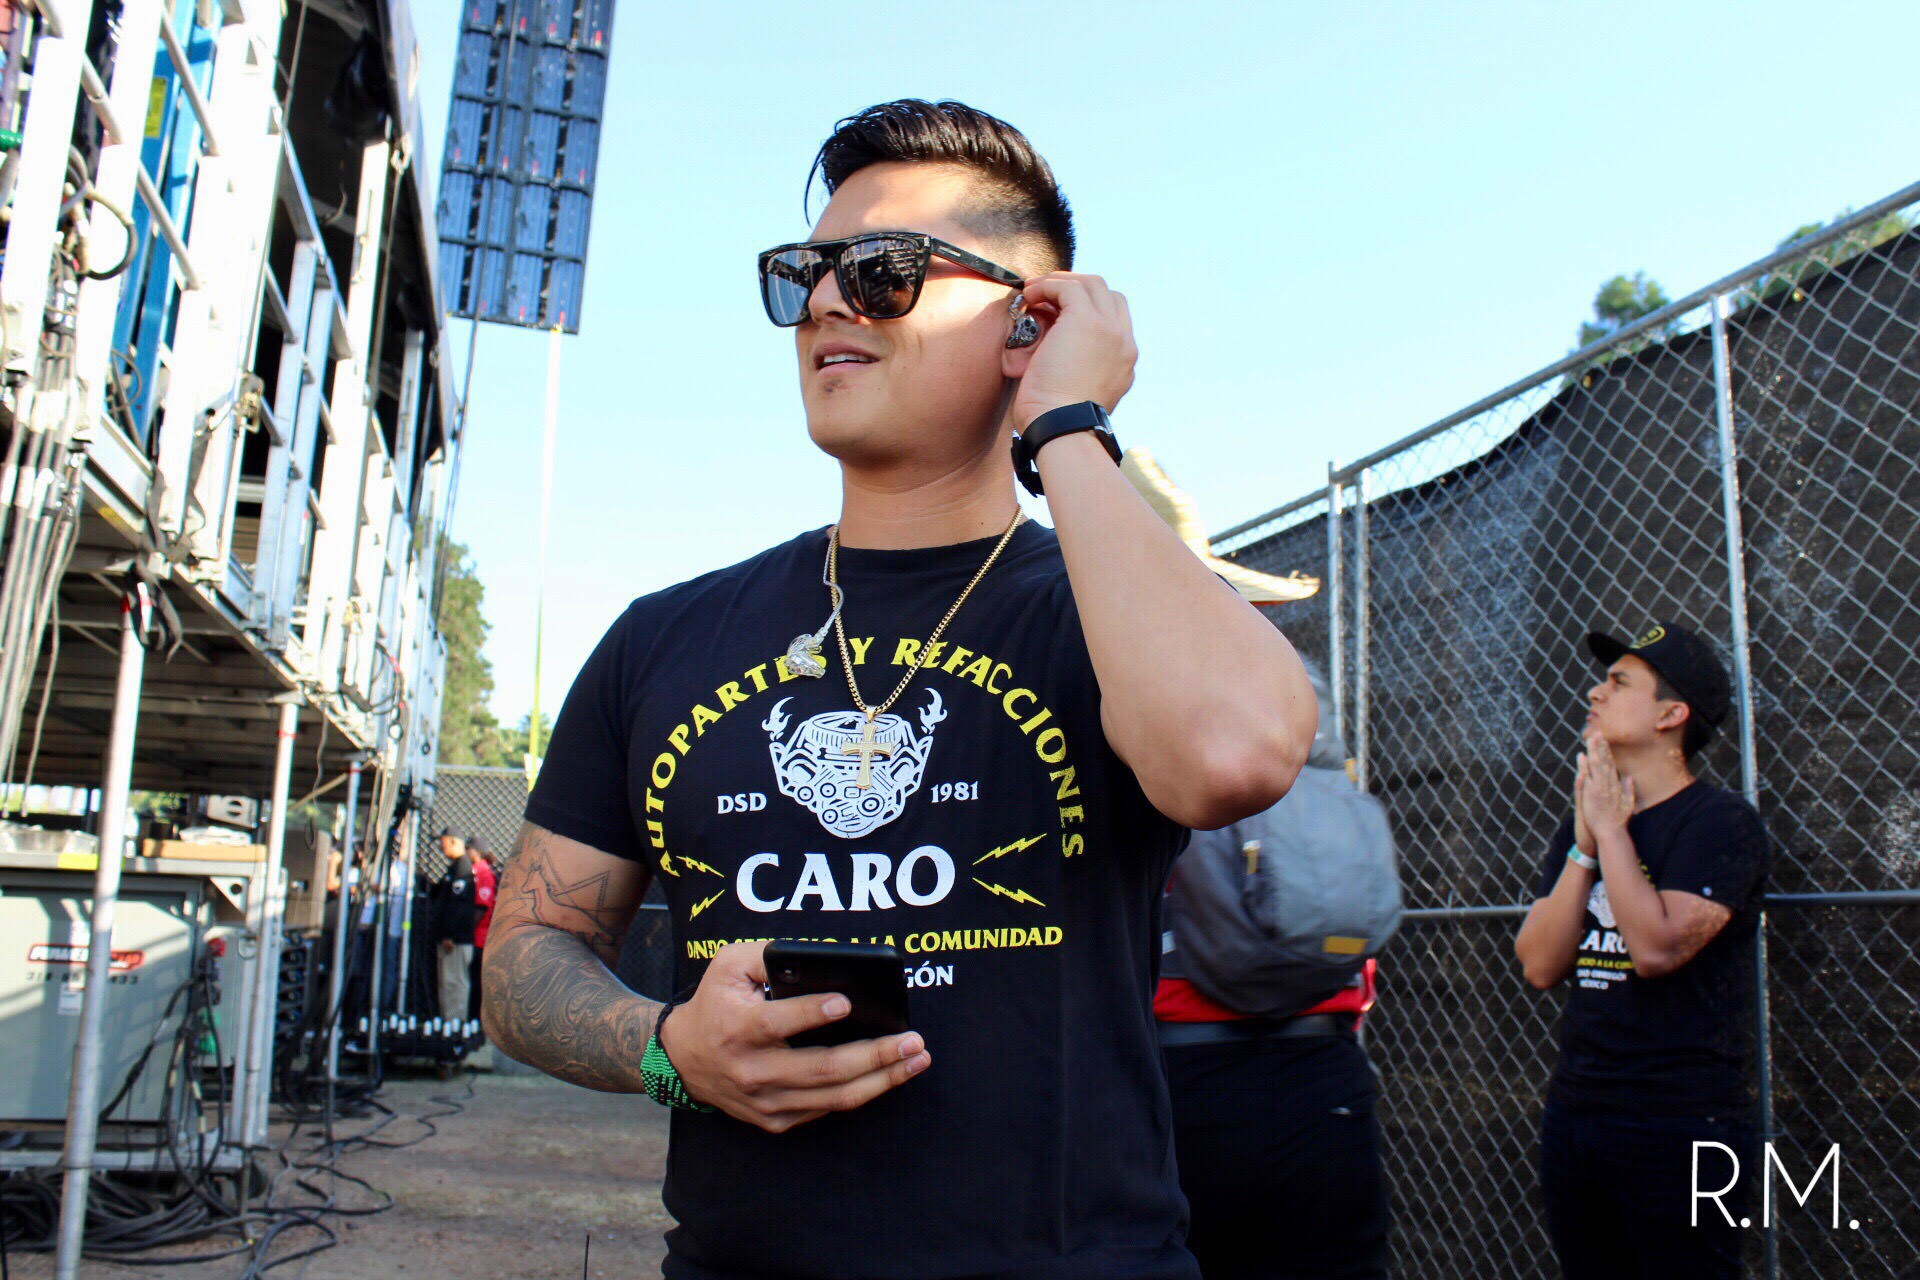 Regulo Caro by Roger Martinez